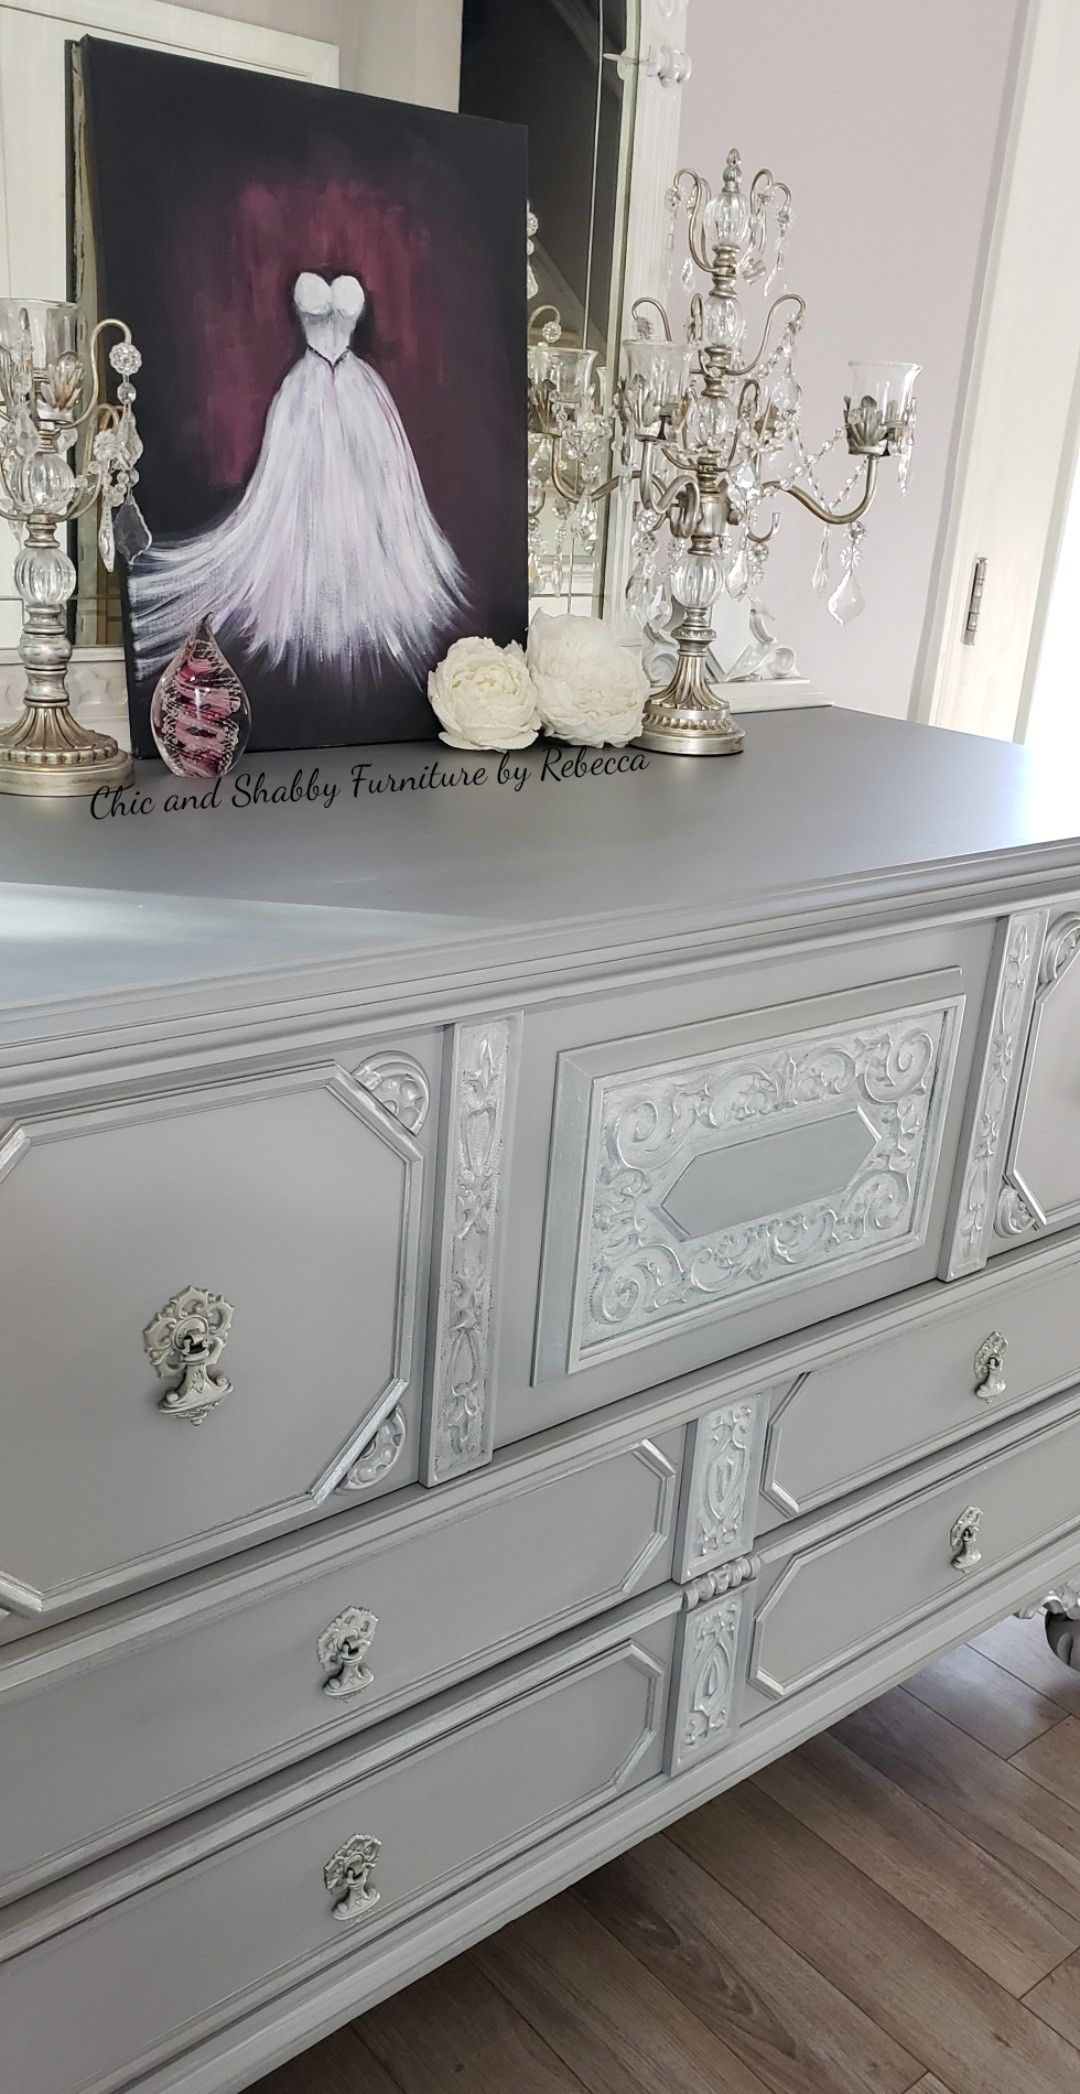 Pin Von Chic And Shabby Furniture By R Auf My Furniture Makeovers Upcycled Repurposed And Diy Chic And Shabby Furniture Pieces Shabby Mobel Kommode Vintage